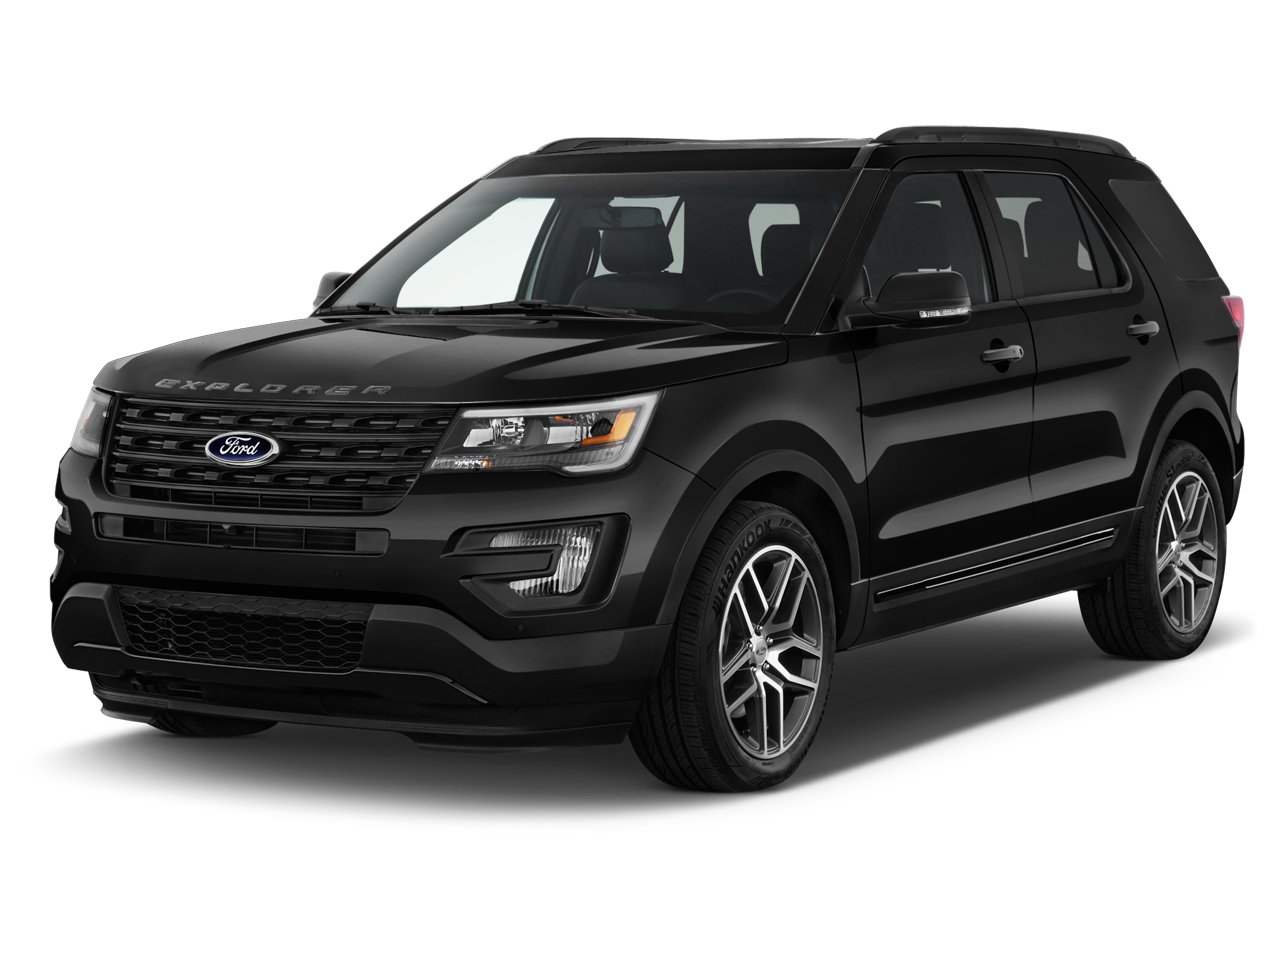 new 2017 ford explorer sport near tulsa ok bob hurley ford. Black Bedroom Furniture Sets. Home Design Ideas